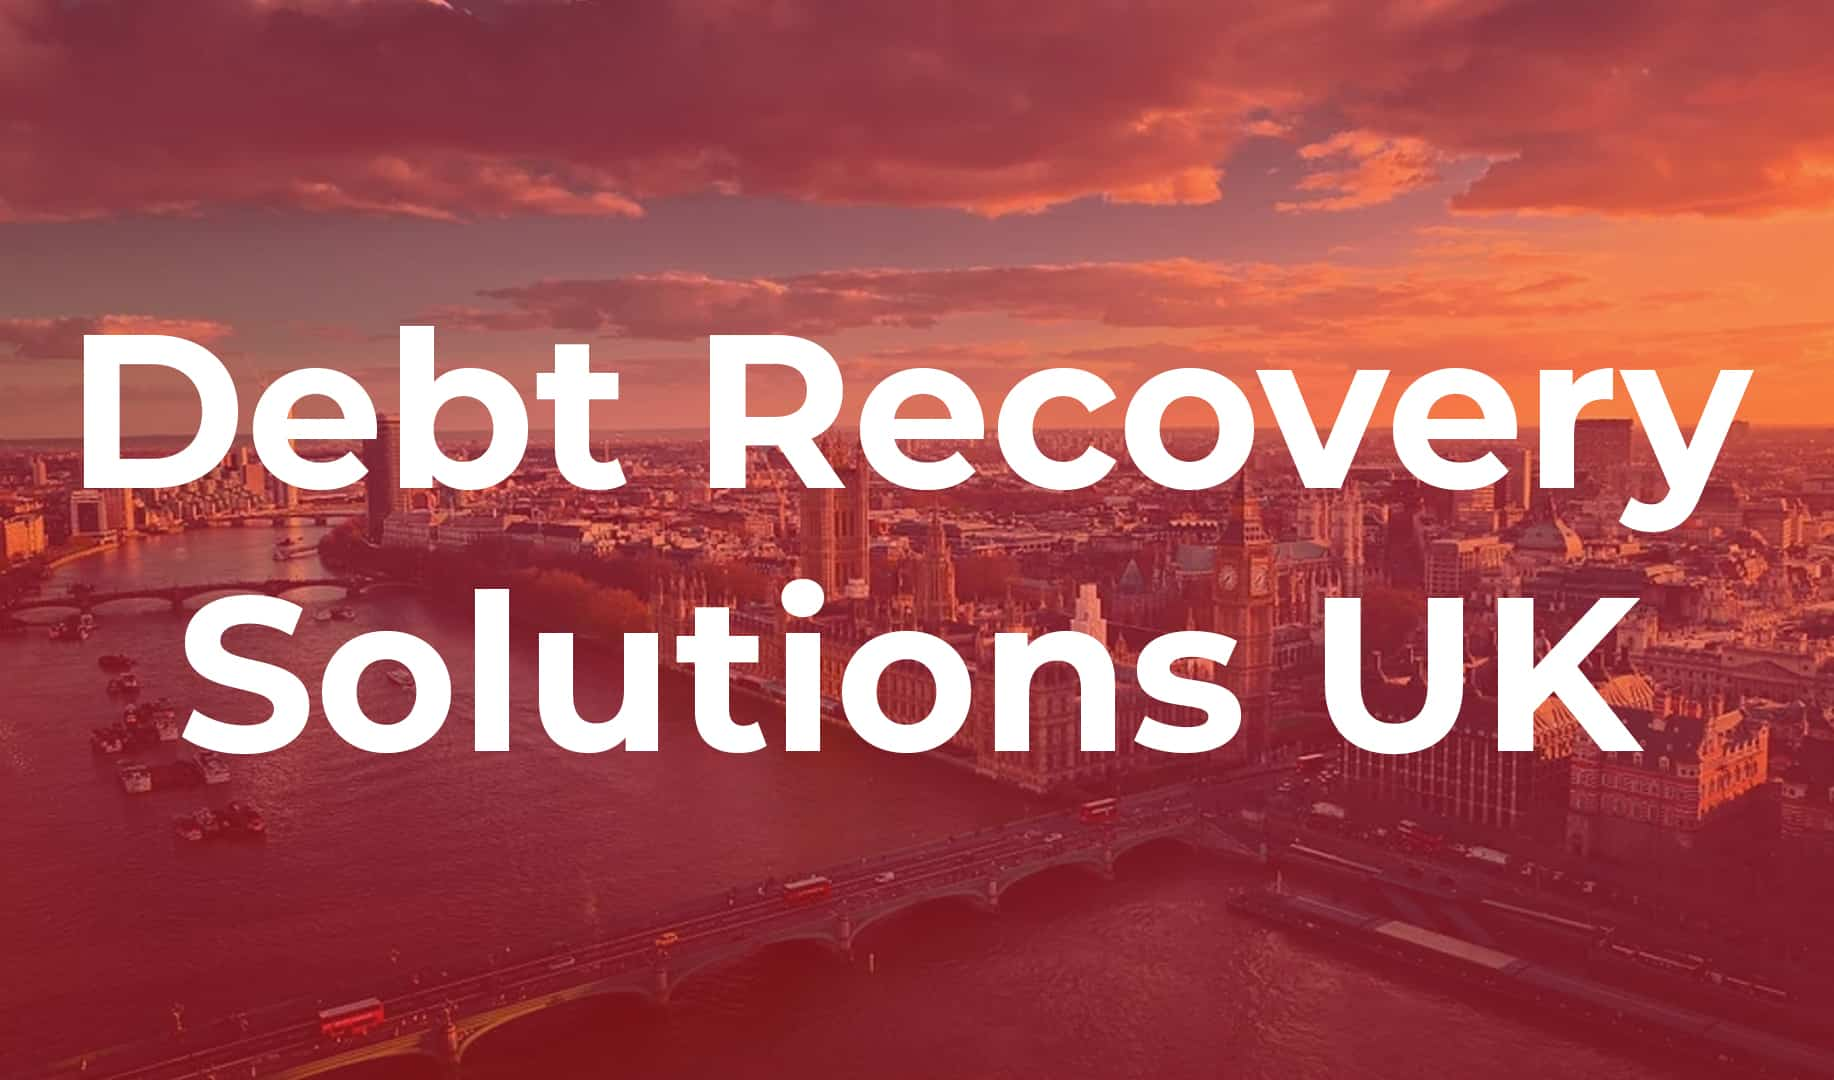 debt Recovery solutions thumbCOMPRESSED Debt Recovery Solutions UK